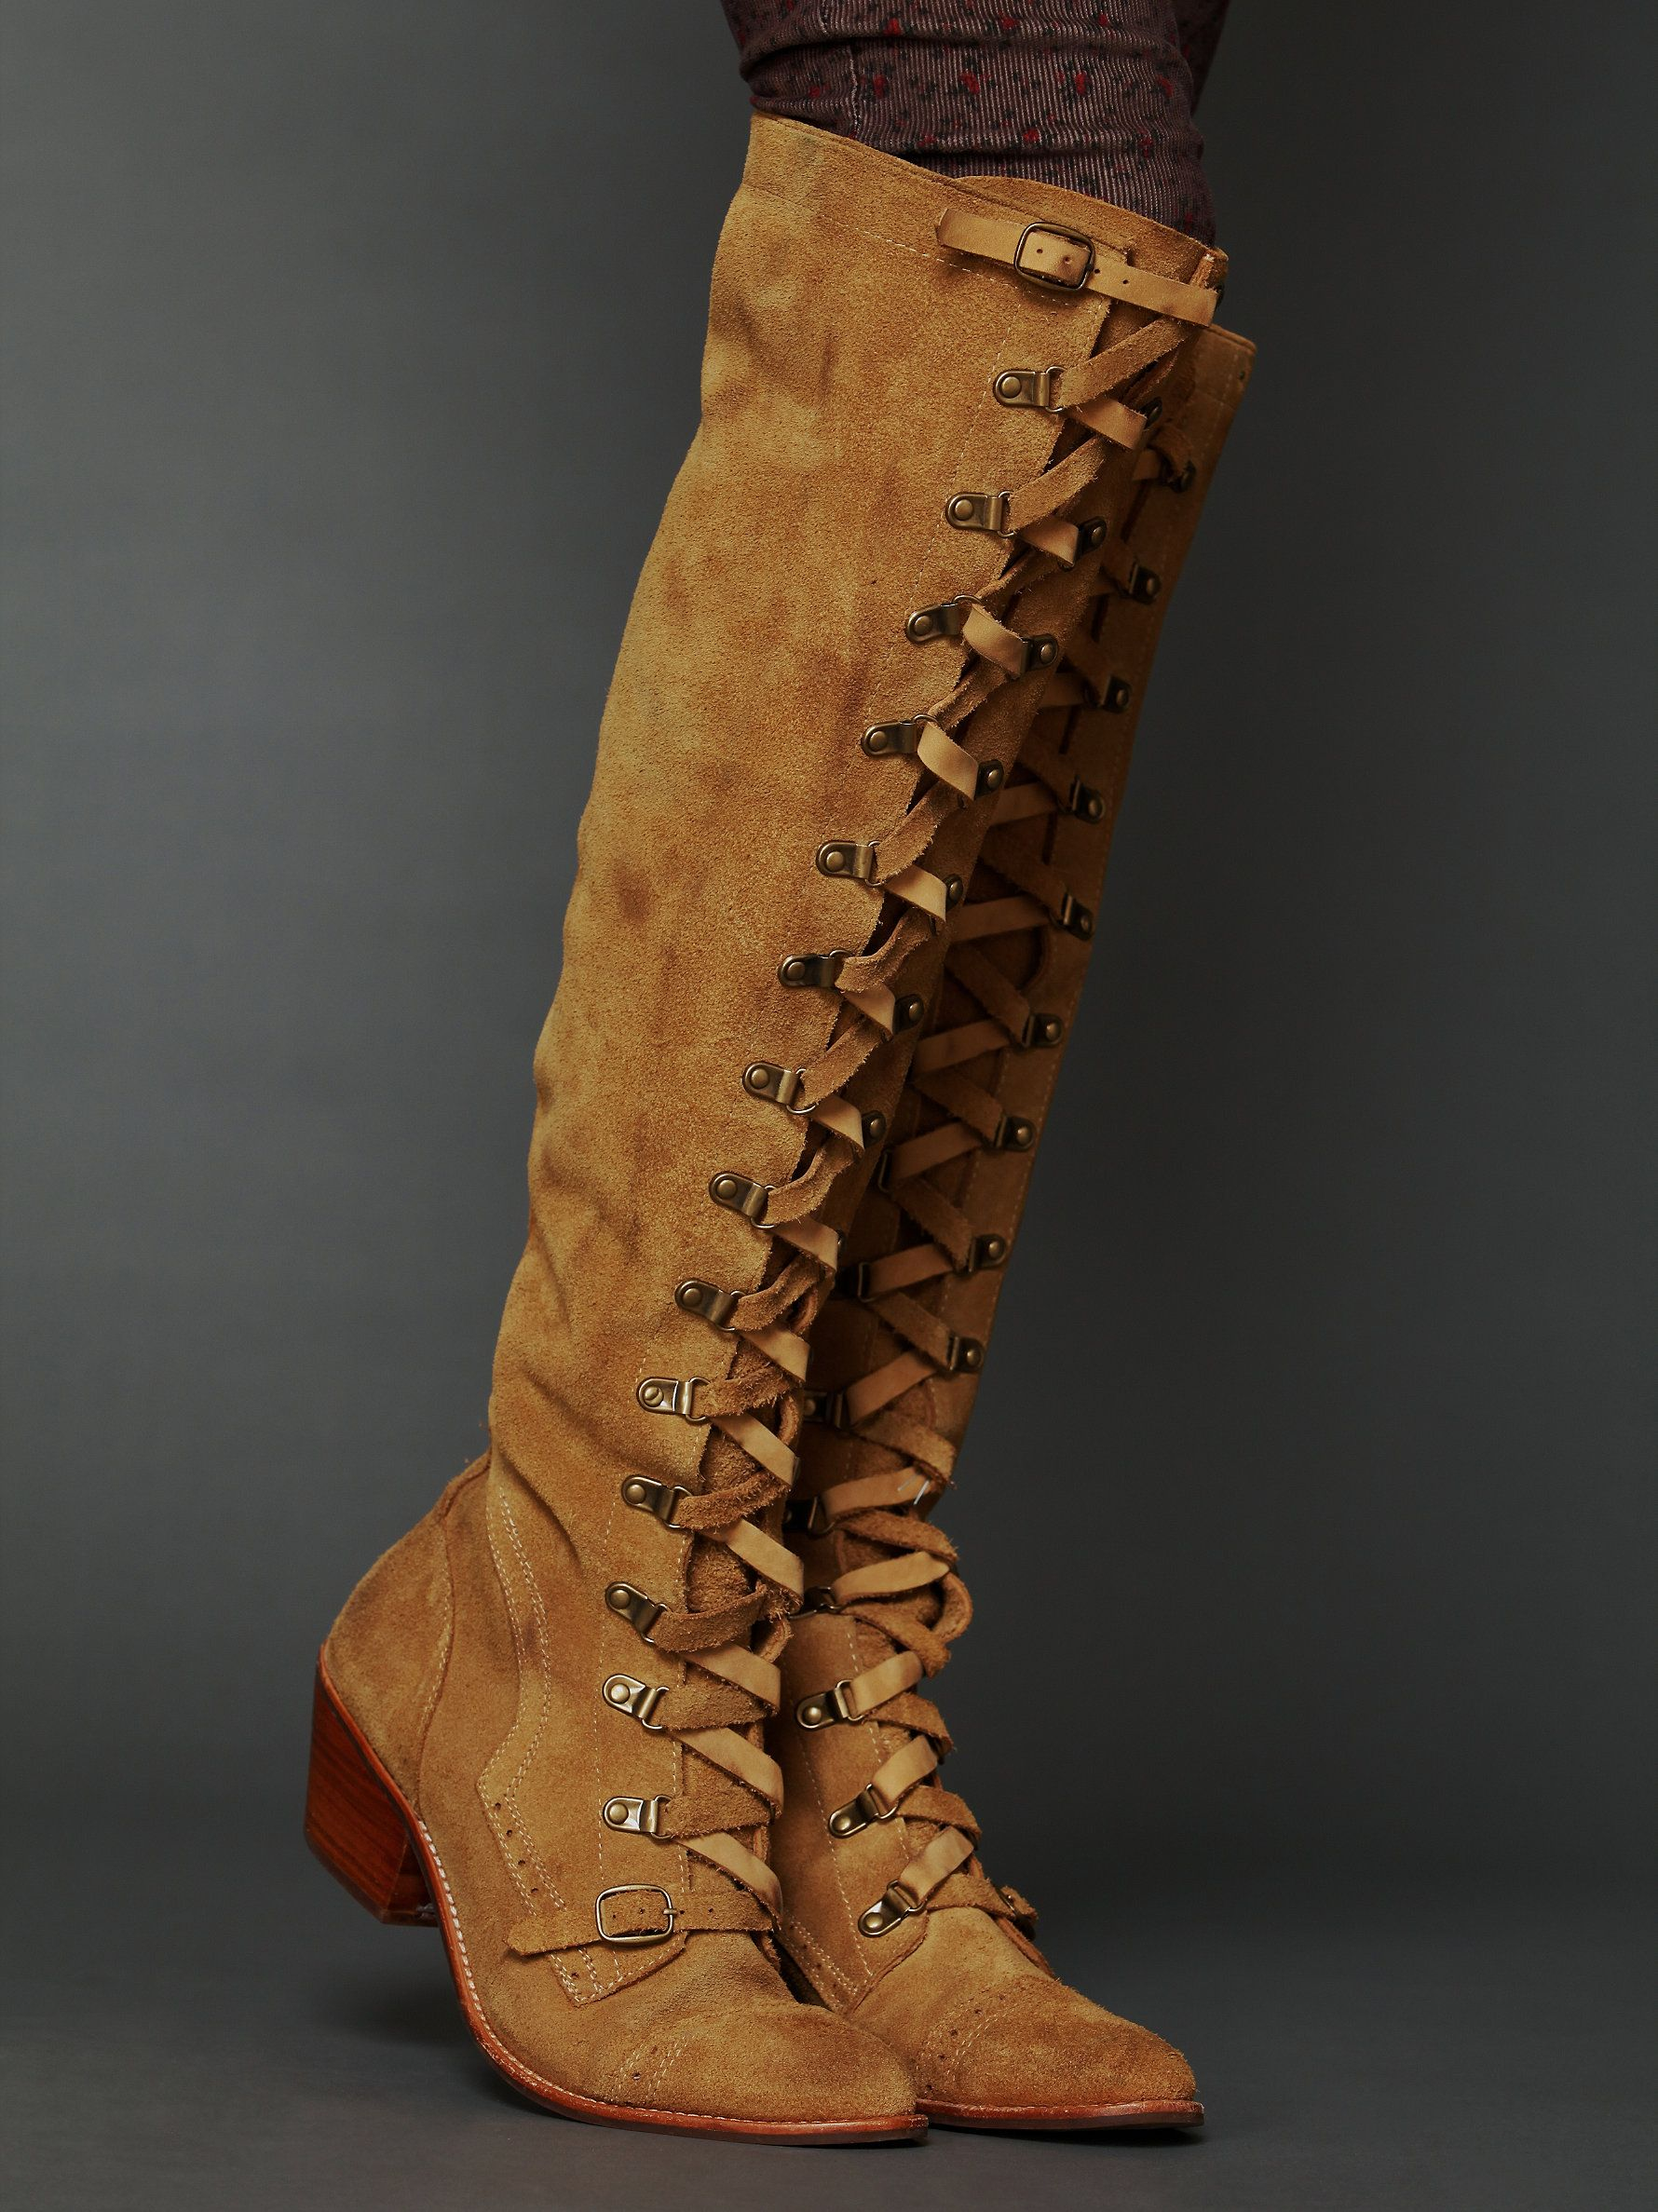 aba4e85a43b Jeffrey Campbell Johnny Tall Boot at Free People Clothing Boutique -  Distressed suede lace-up tall boot with low heel. Zips up the inner side.  Rubber sole.